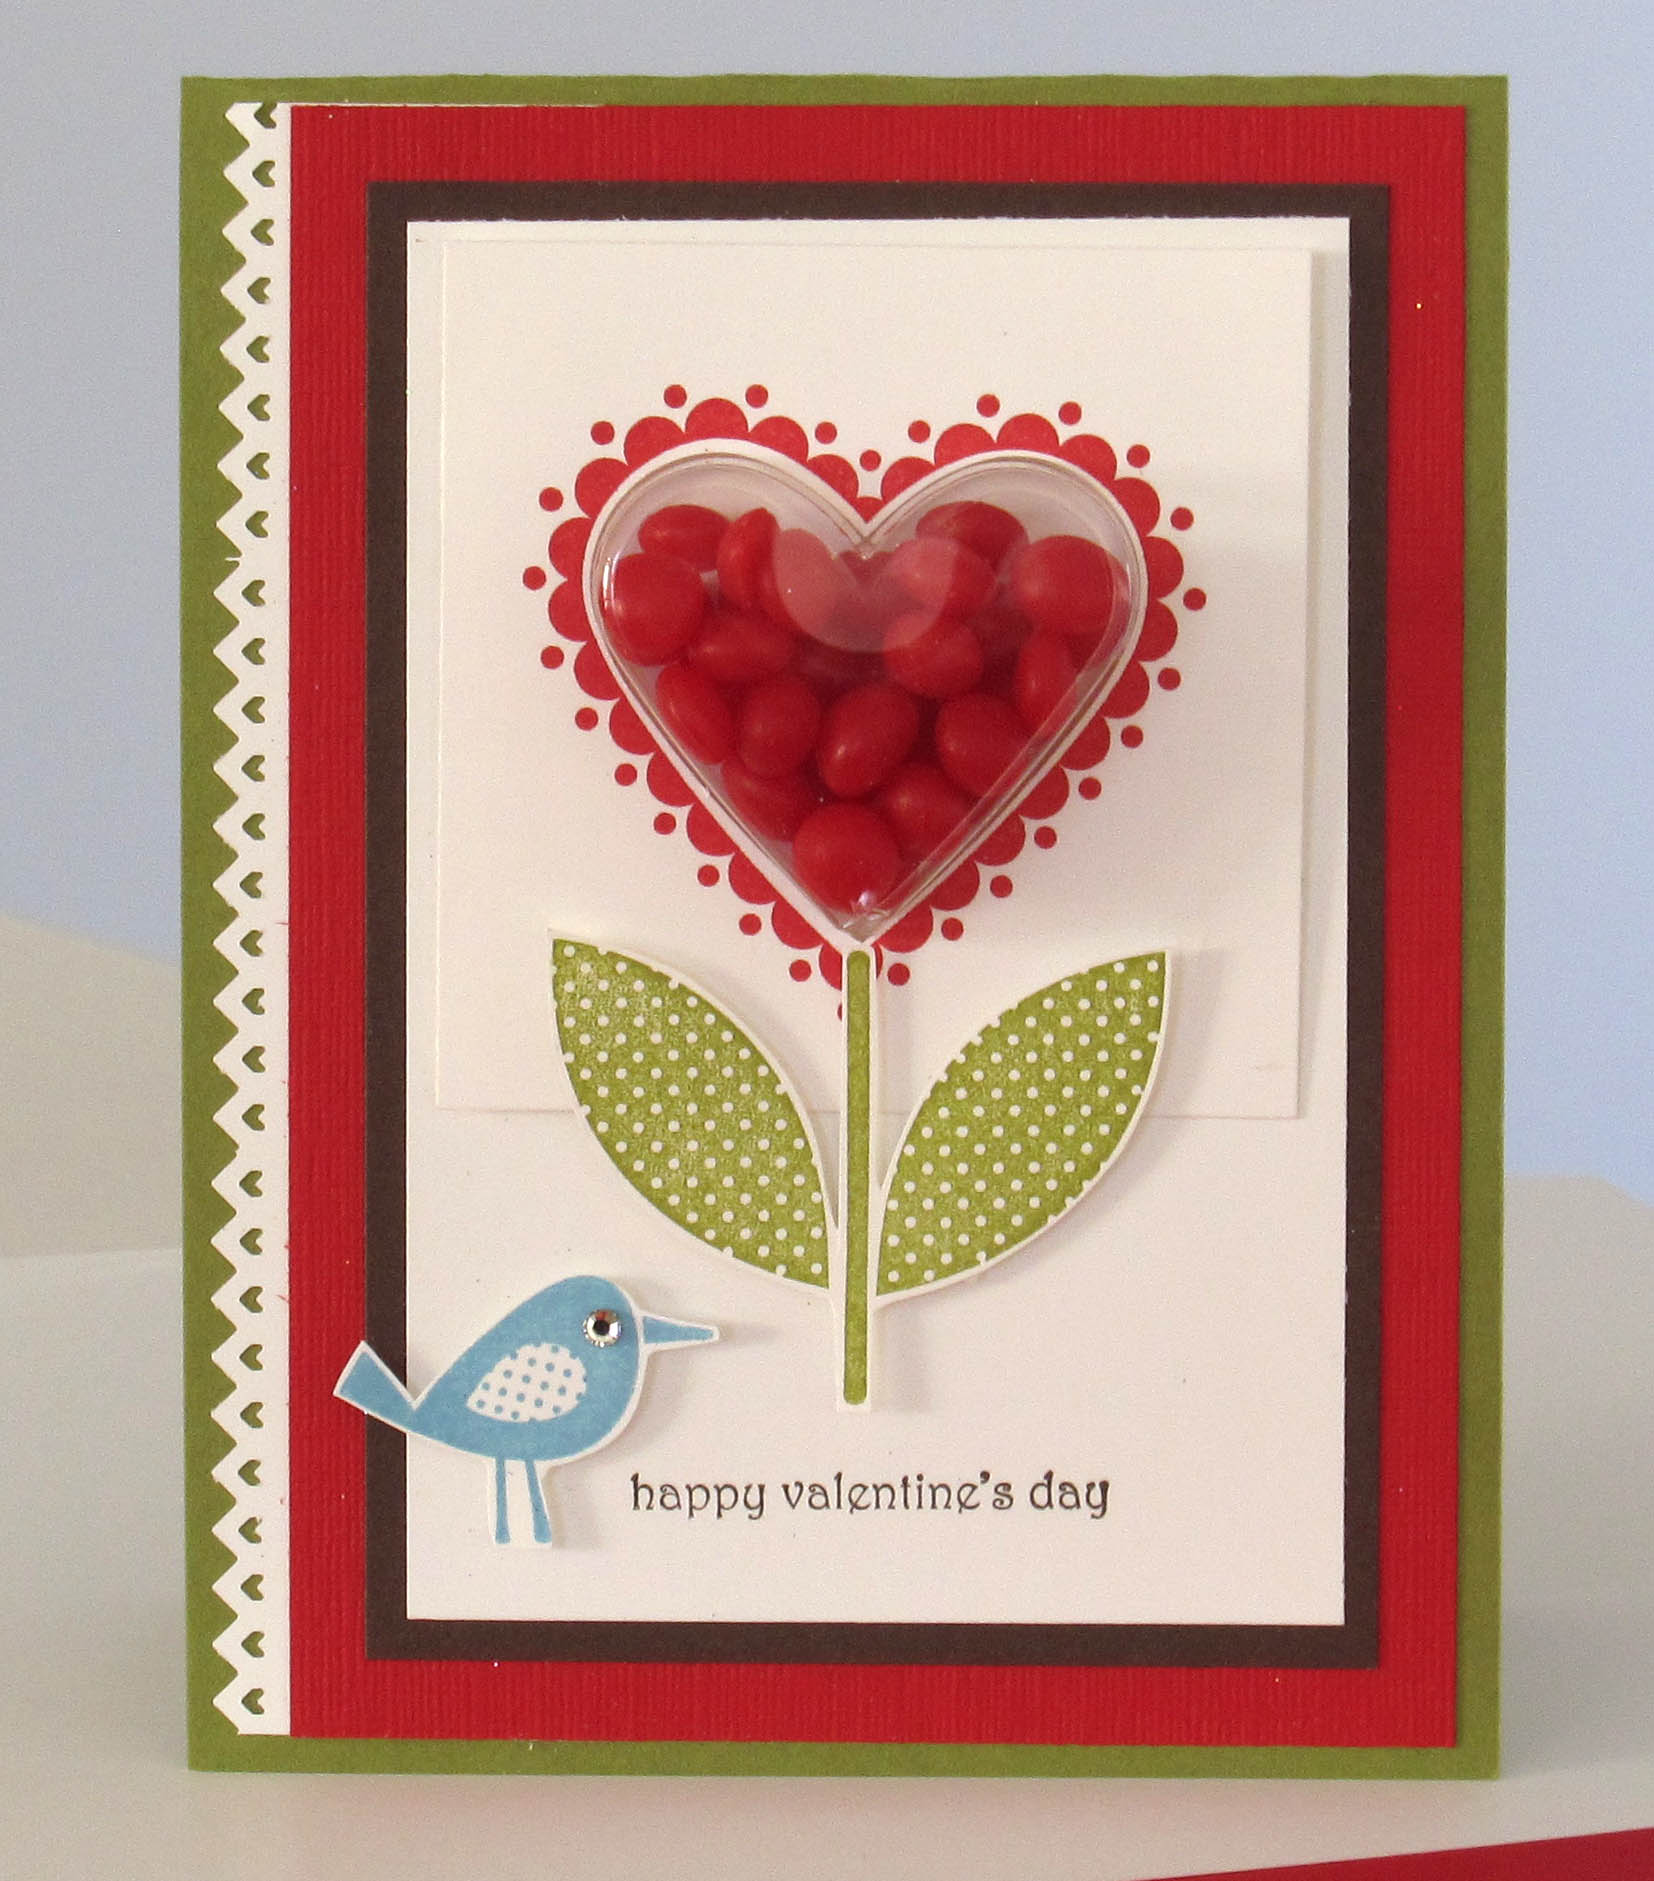 stampin up heart treat cup valentines card post by demonstrator brandy cox